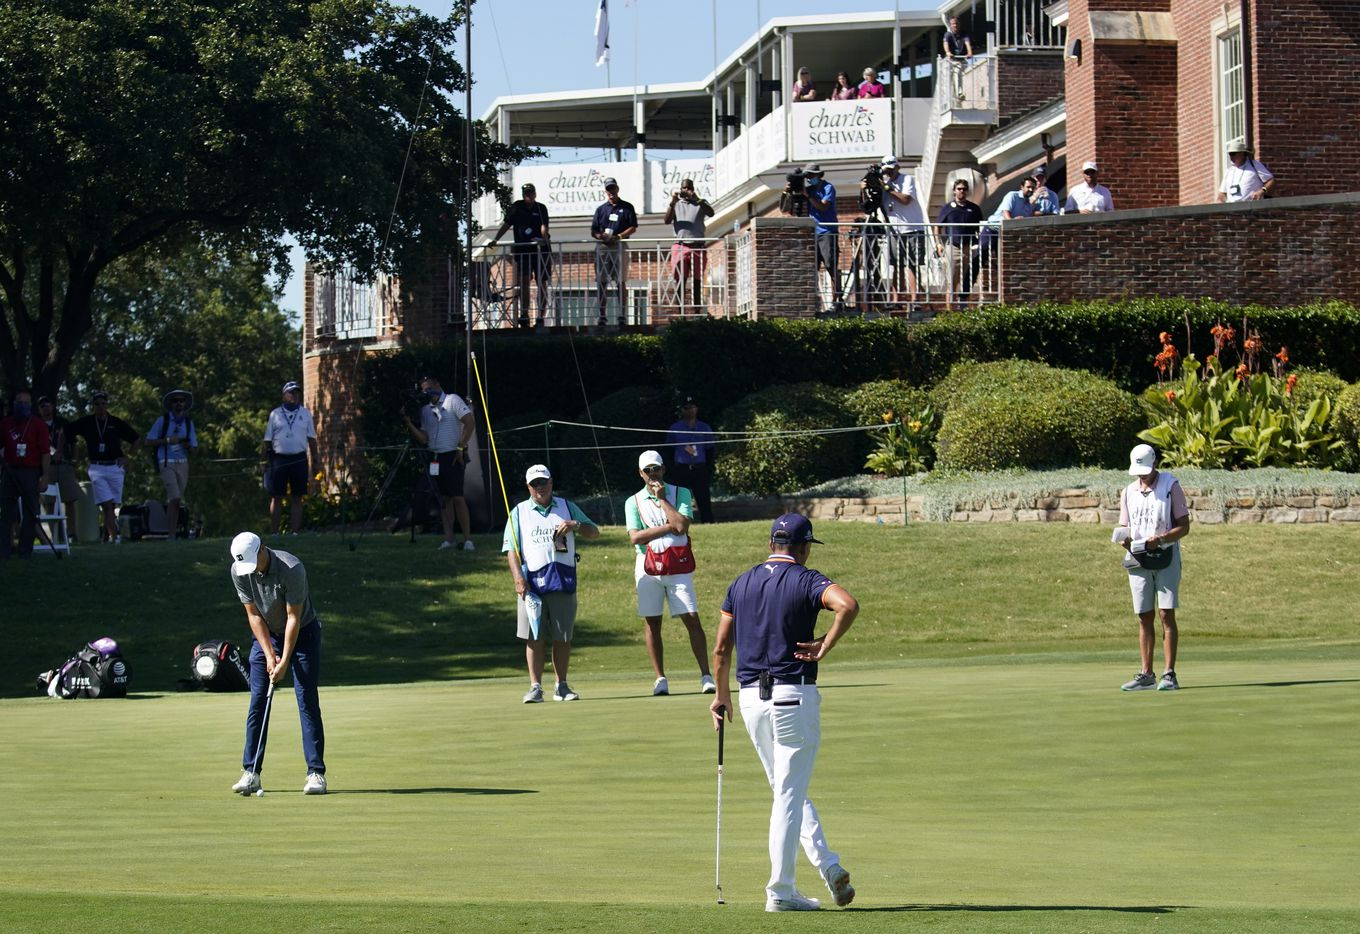 With only the media and volunteers looking on, PGA Tour golfer Jordan Spieth attempts a birdie putt on the par-3, No. 16 during the opening round of the Charles Schwab Challenge at the Colonial Country Club in Fort Worth, Thursday, June 11, 2020.  The Challenge is the first tour event since the COVID-19 pandemic began. (Tom Fox/The Dallas Morning News)